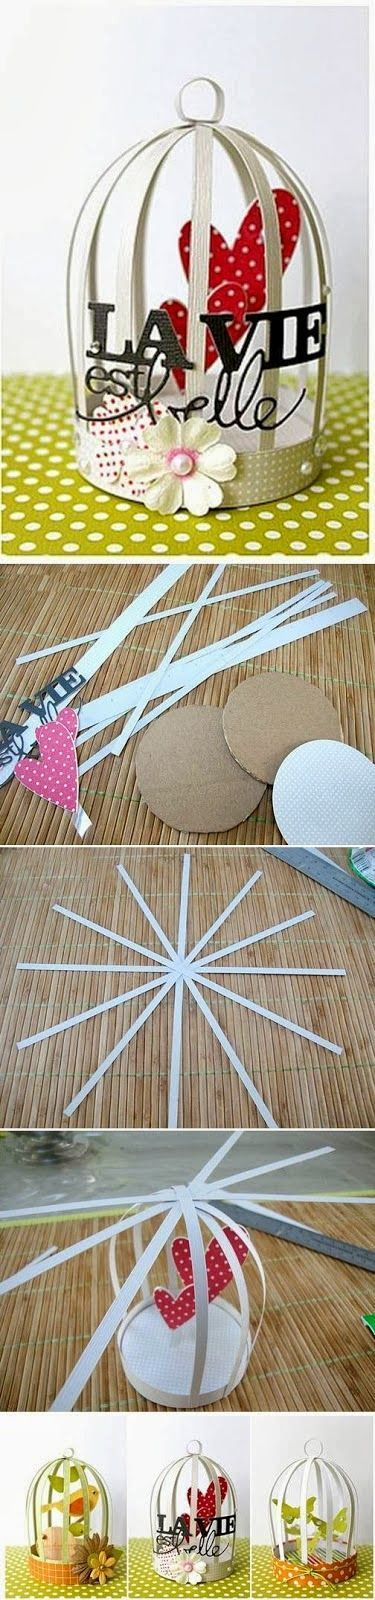 My DIY Projects: How To Make A Mini Decorative Cage (follow the pics)